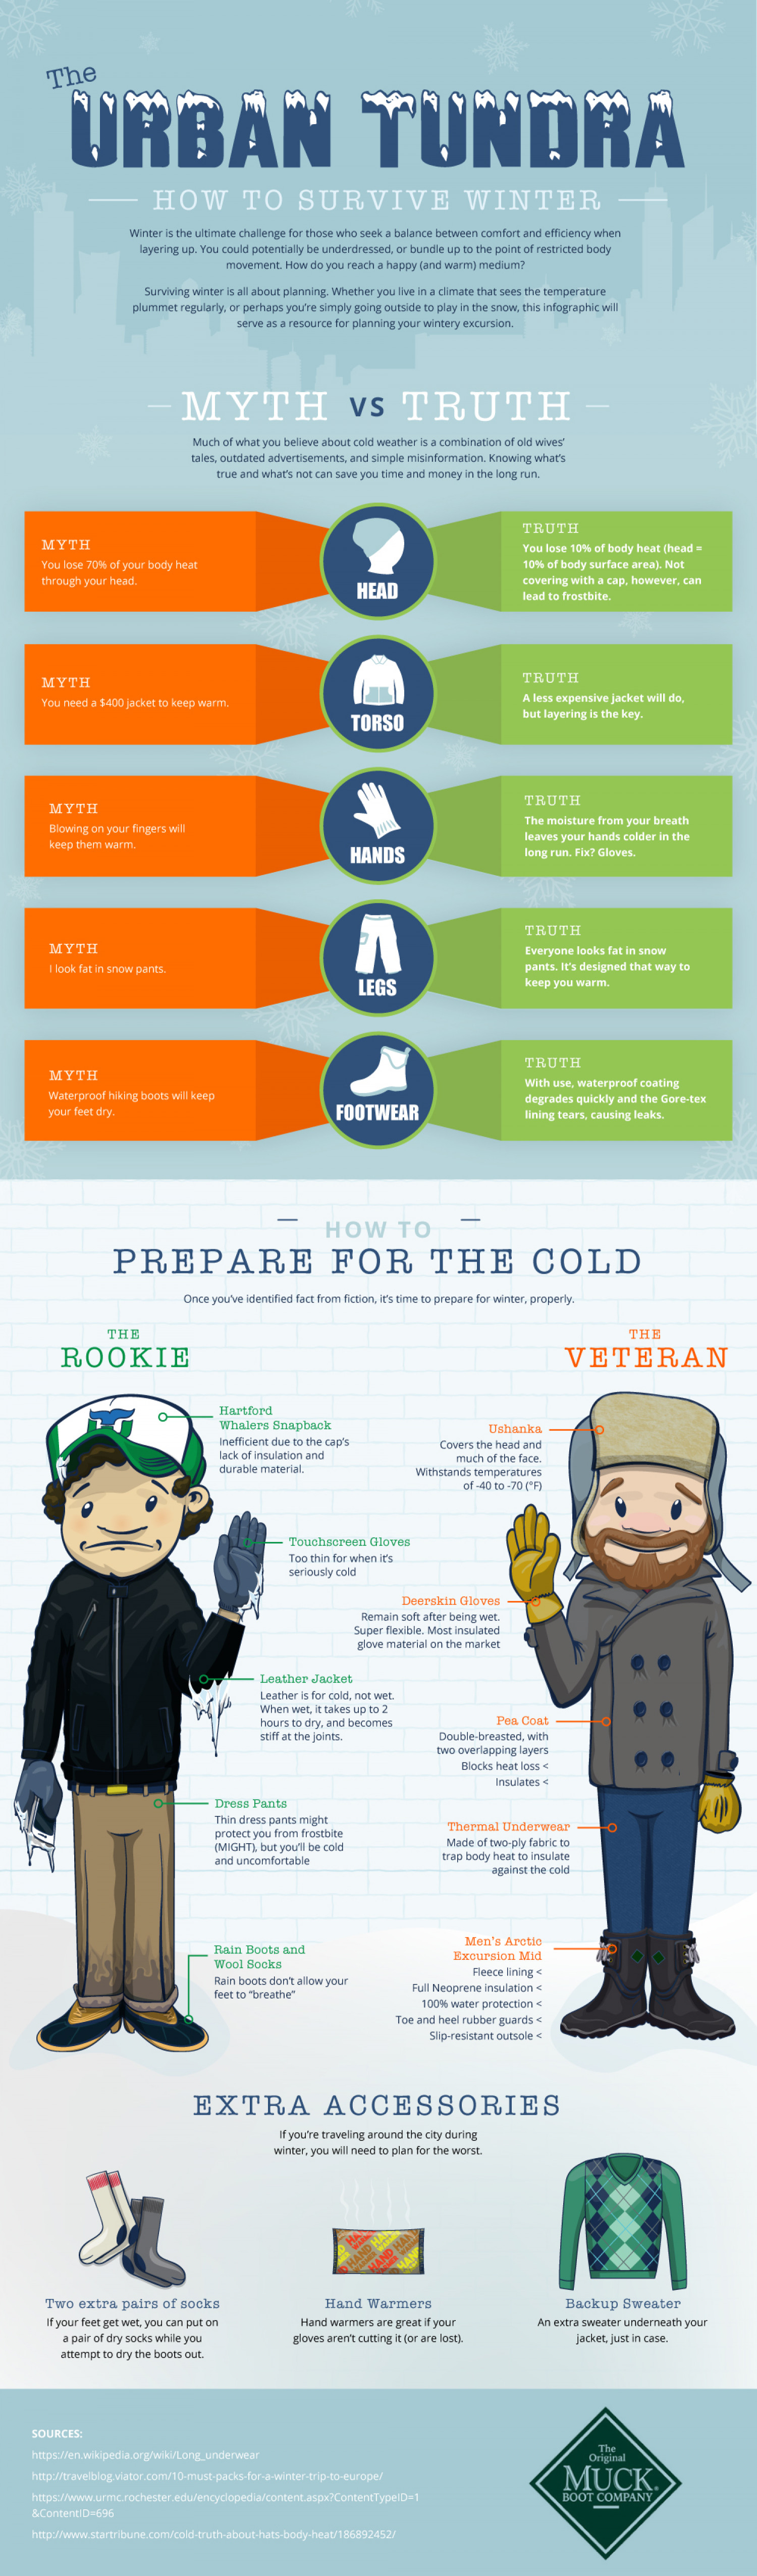 The Urban Tundra: How to Survive Winter Infographic